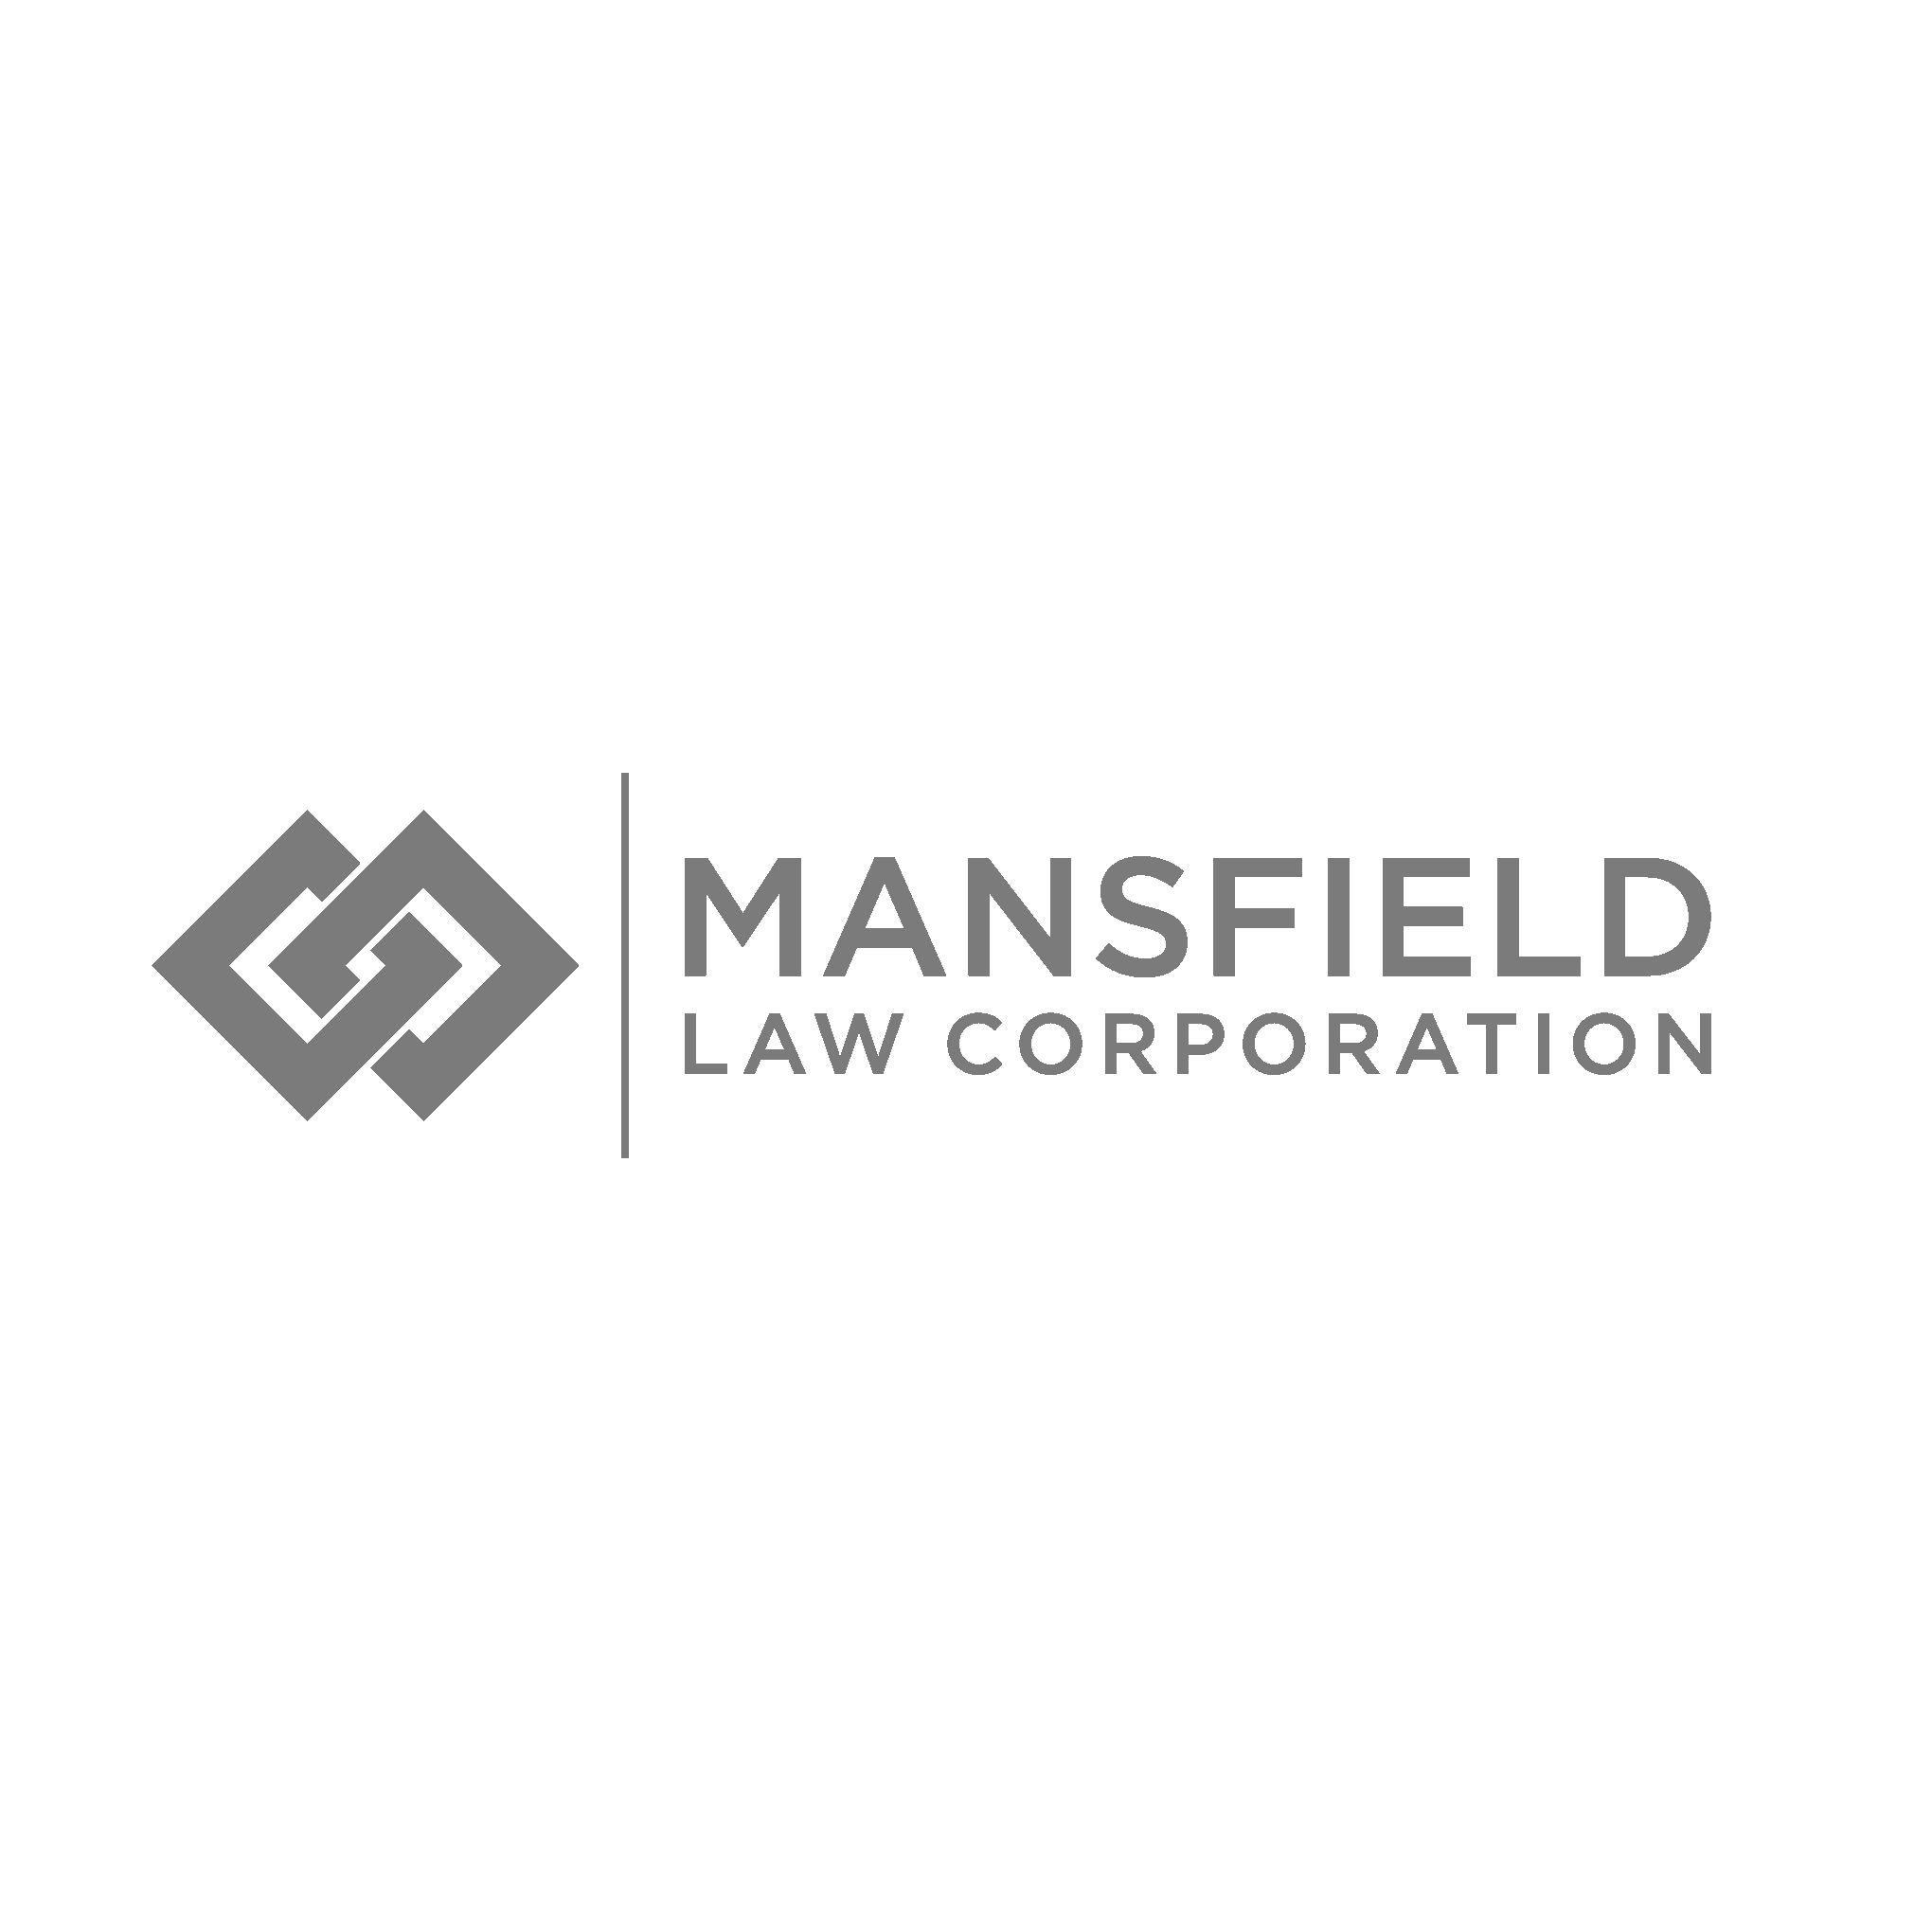 Mansfield Law Corporation - Simi Valley, CA 93065 - (805)334-0291 | ShowMeLocal.com